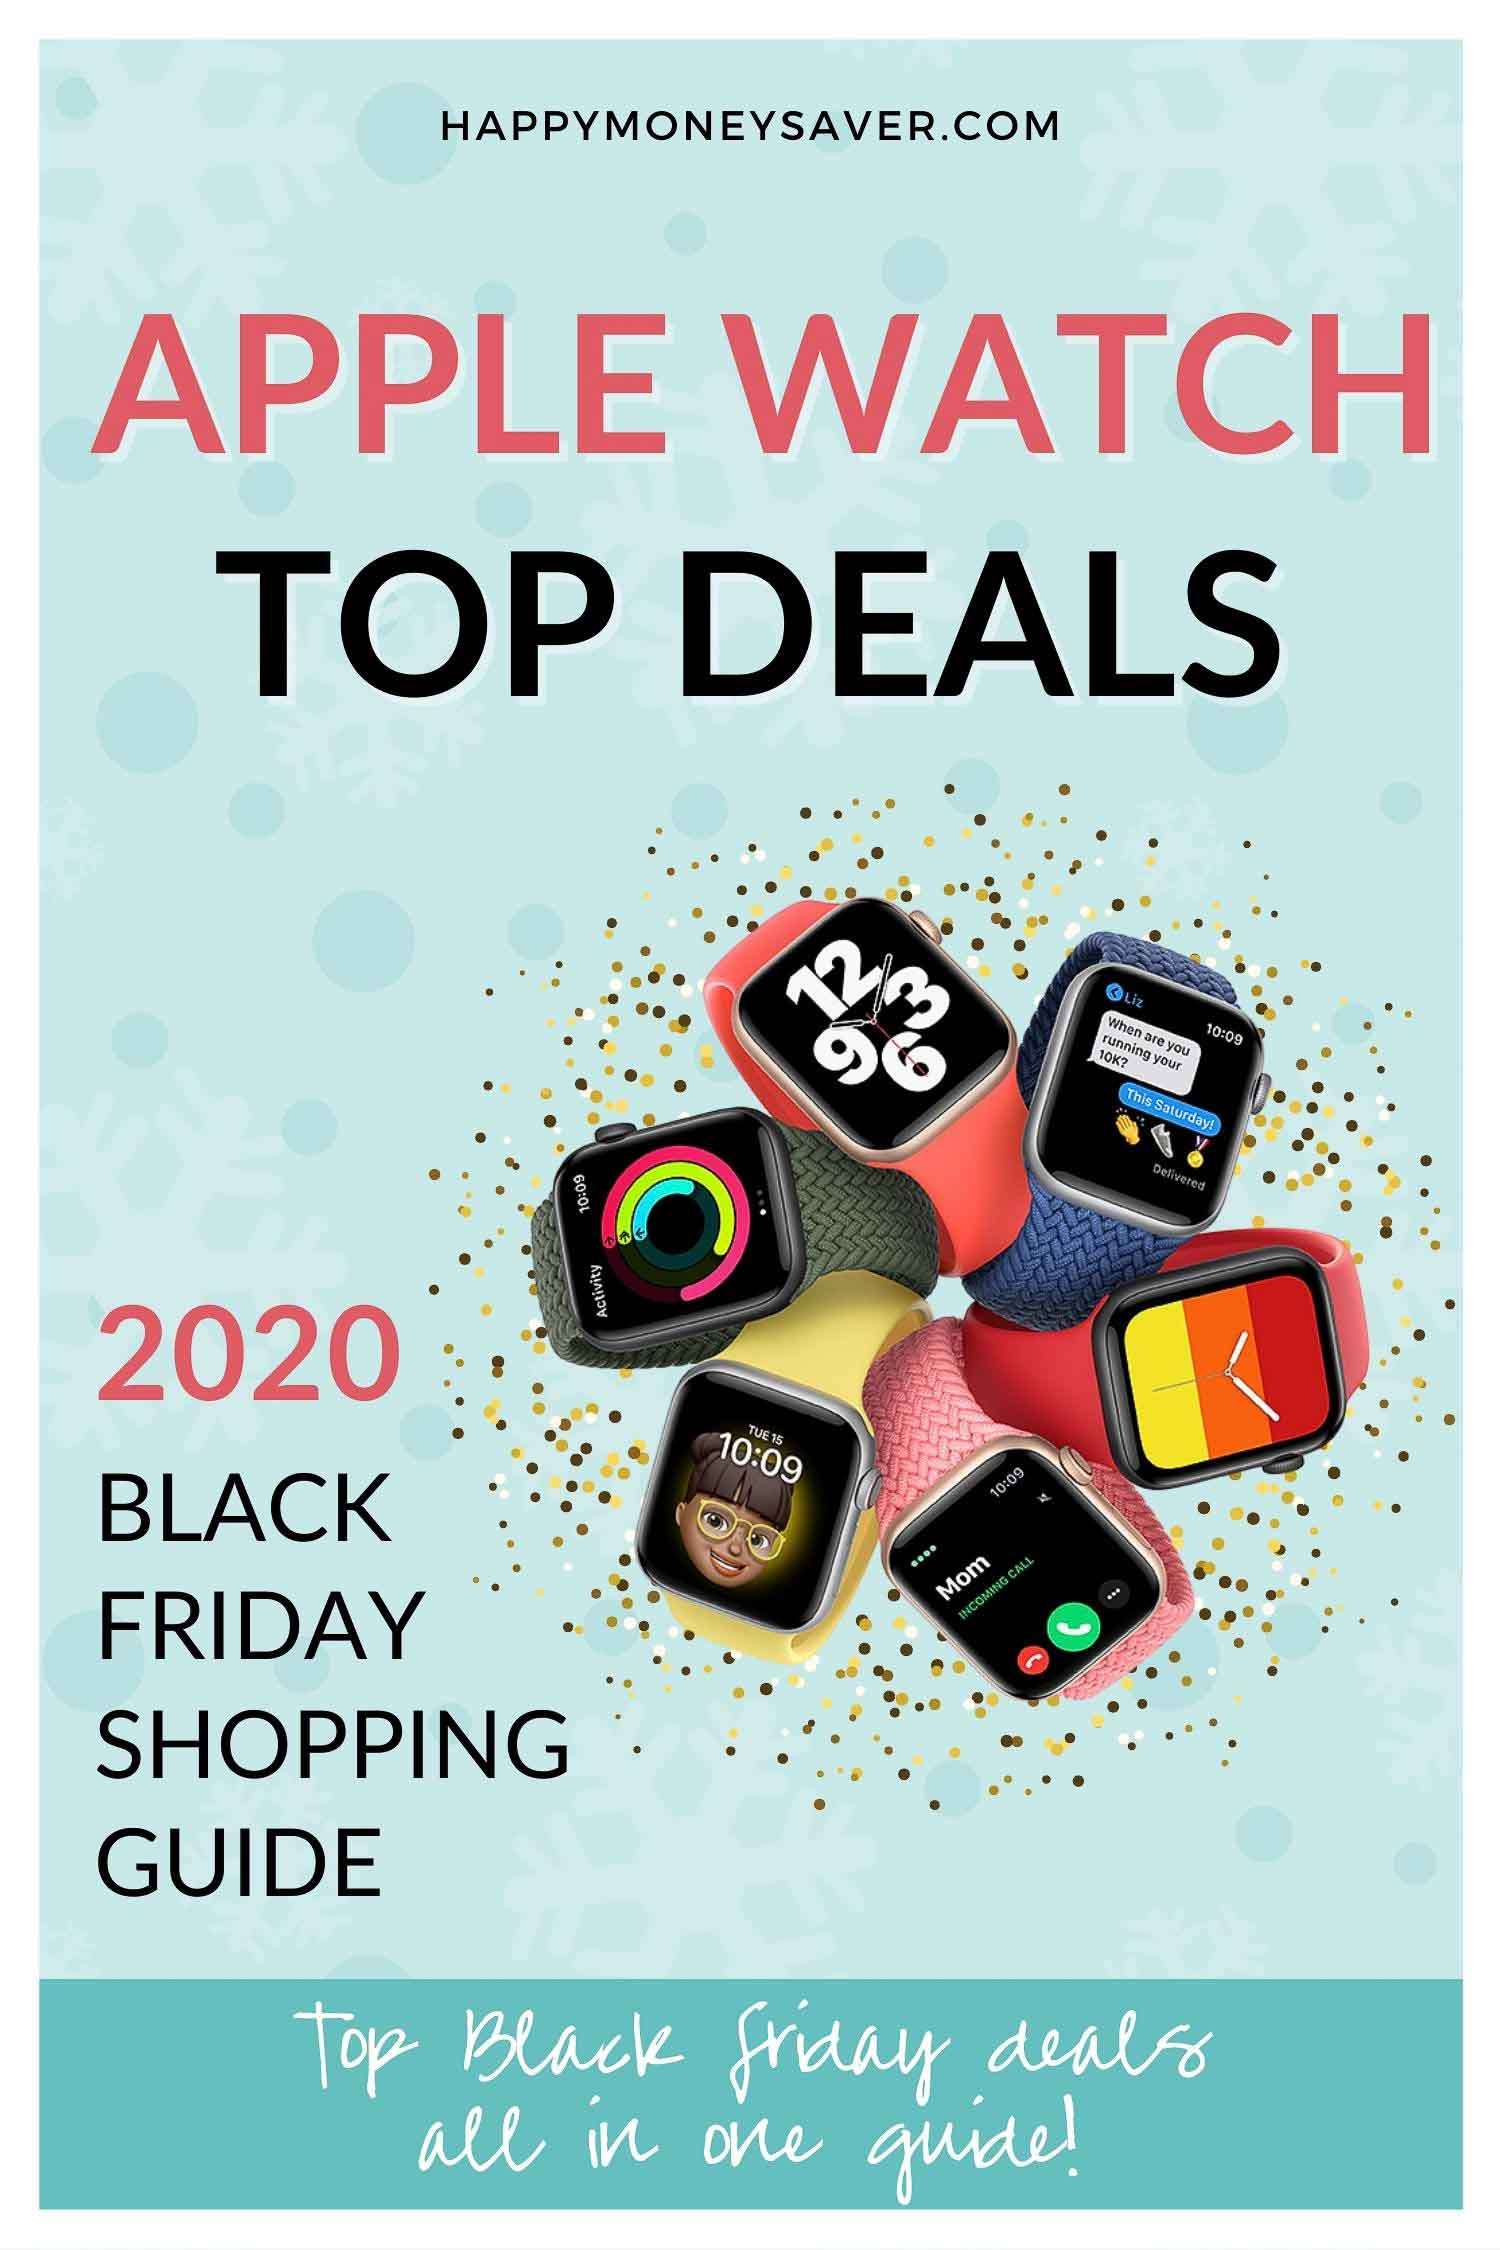 HUGE roundup of all the apple watch Black Friday deals for 2020! Research is all done for you! You're gonna love this if you love saving money! #blackfriday #applewatch via @happymoneysaver.com